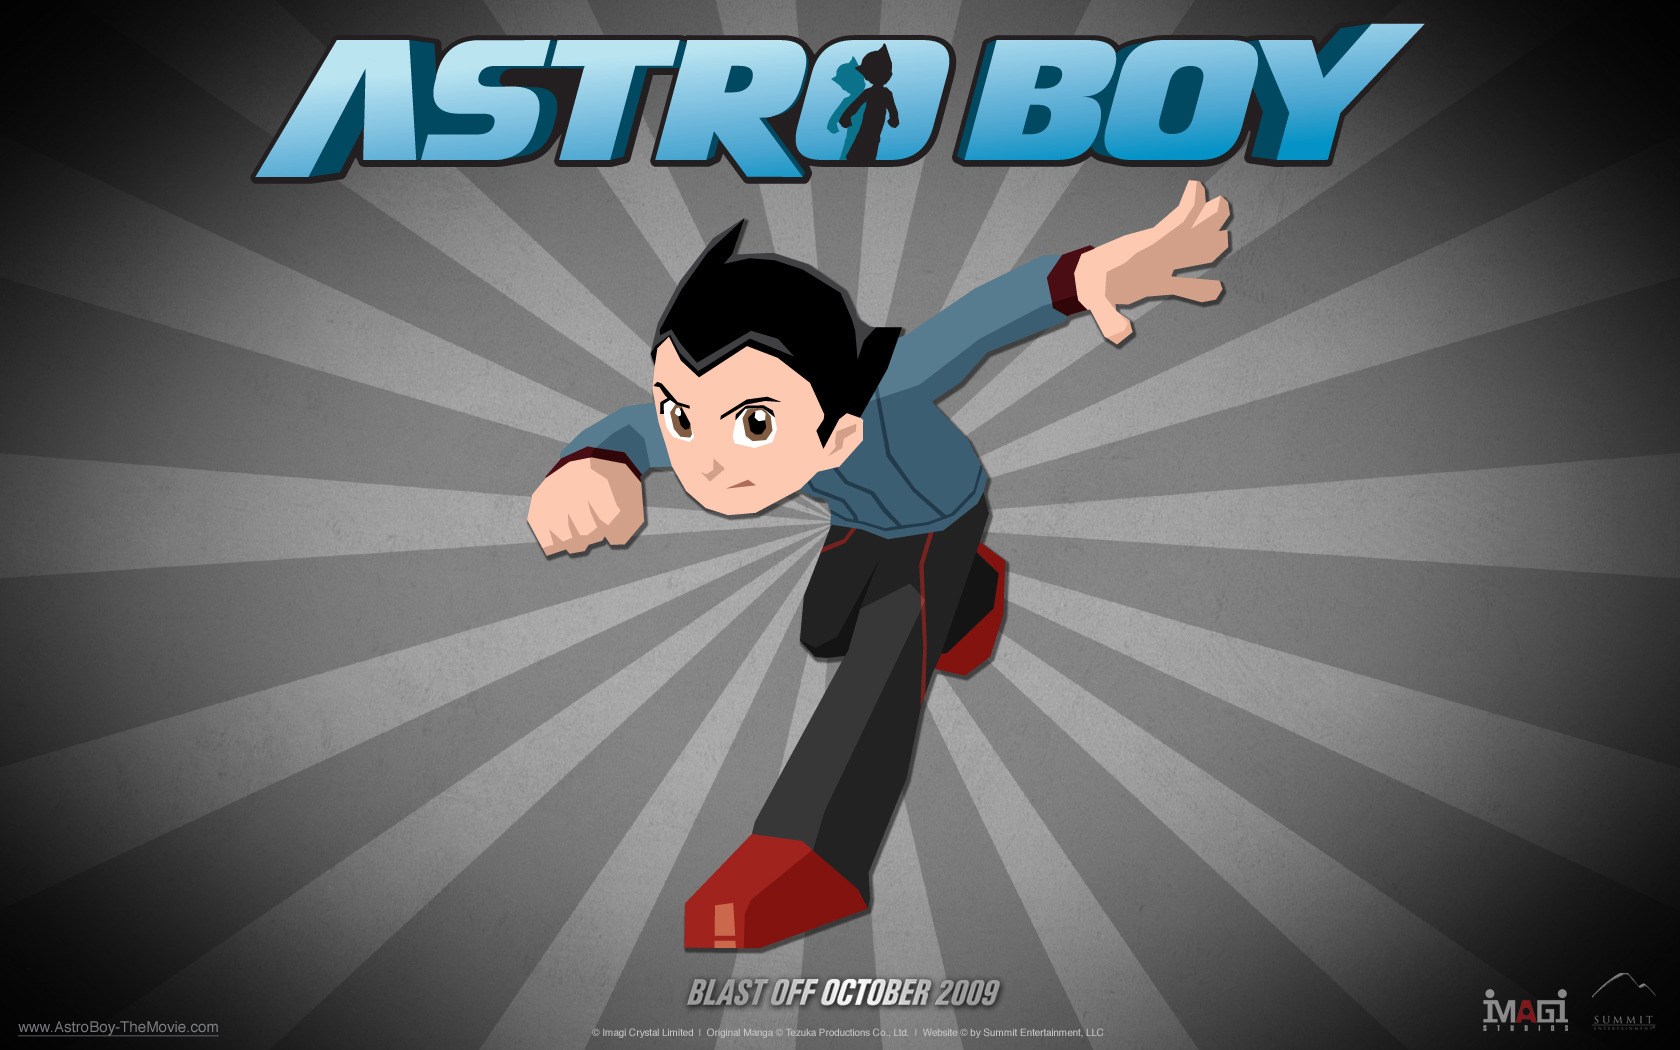 Astro Boy Photo Gallery Posters Images Wallpapers The Movie Action Figure Original Wallpaper